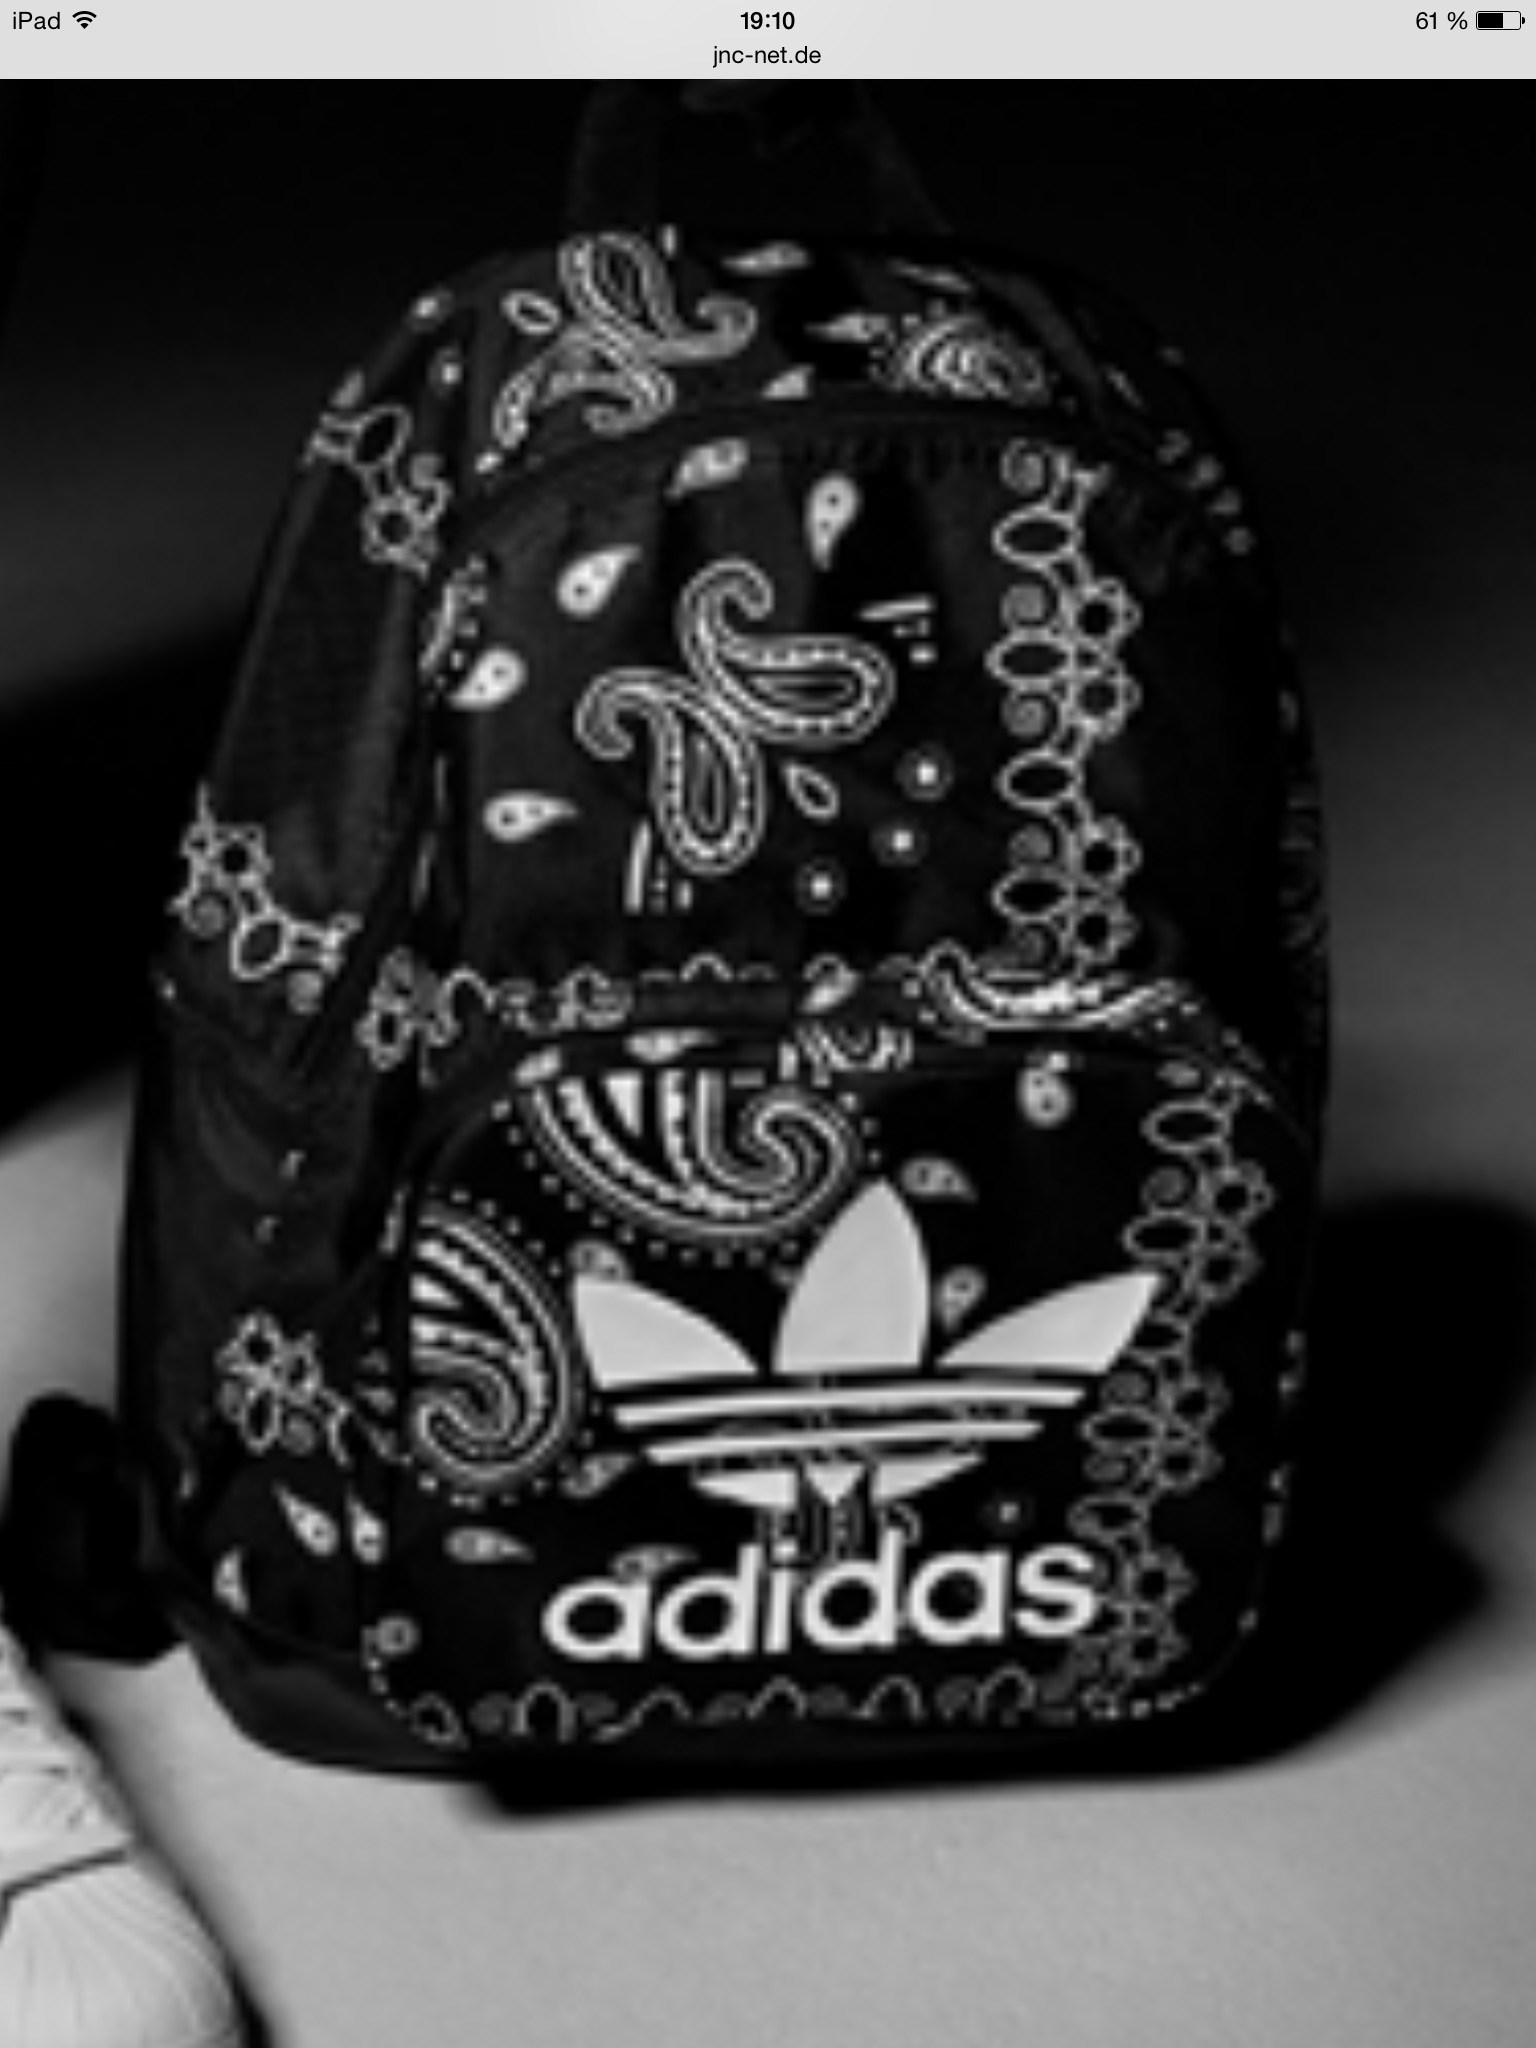 wo kauft man diesen rucksack adidas. Black Bedroom Furniture Sets. Home Design Ideas